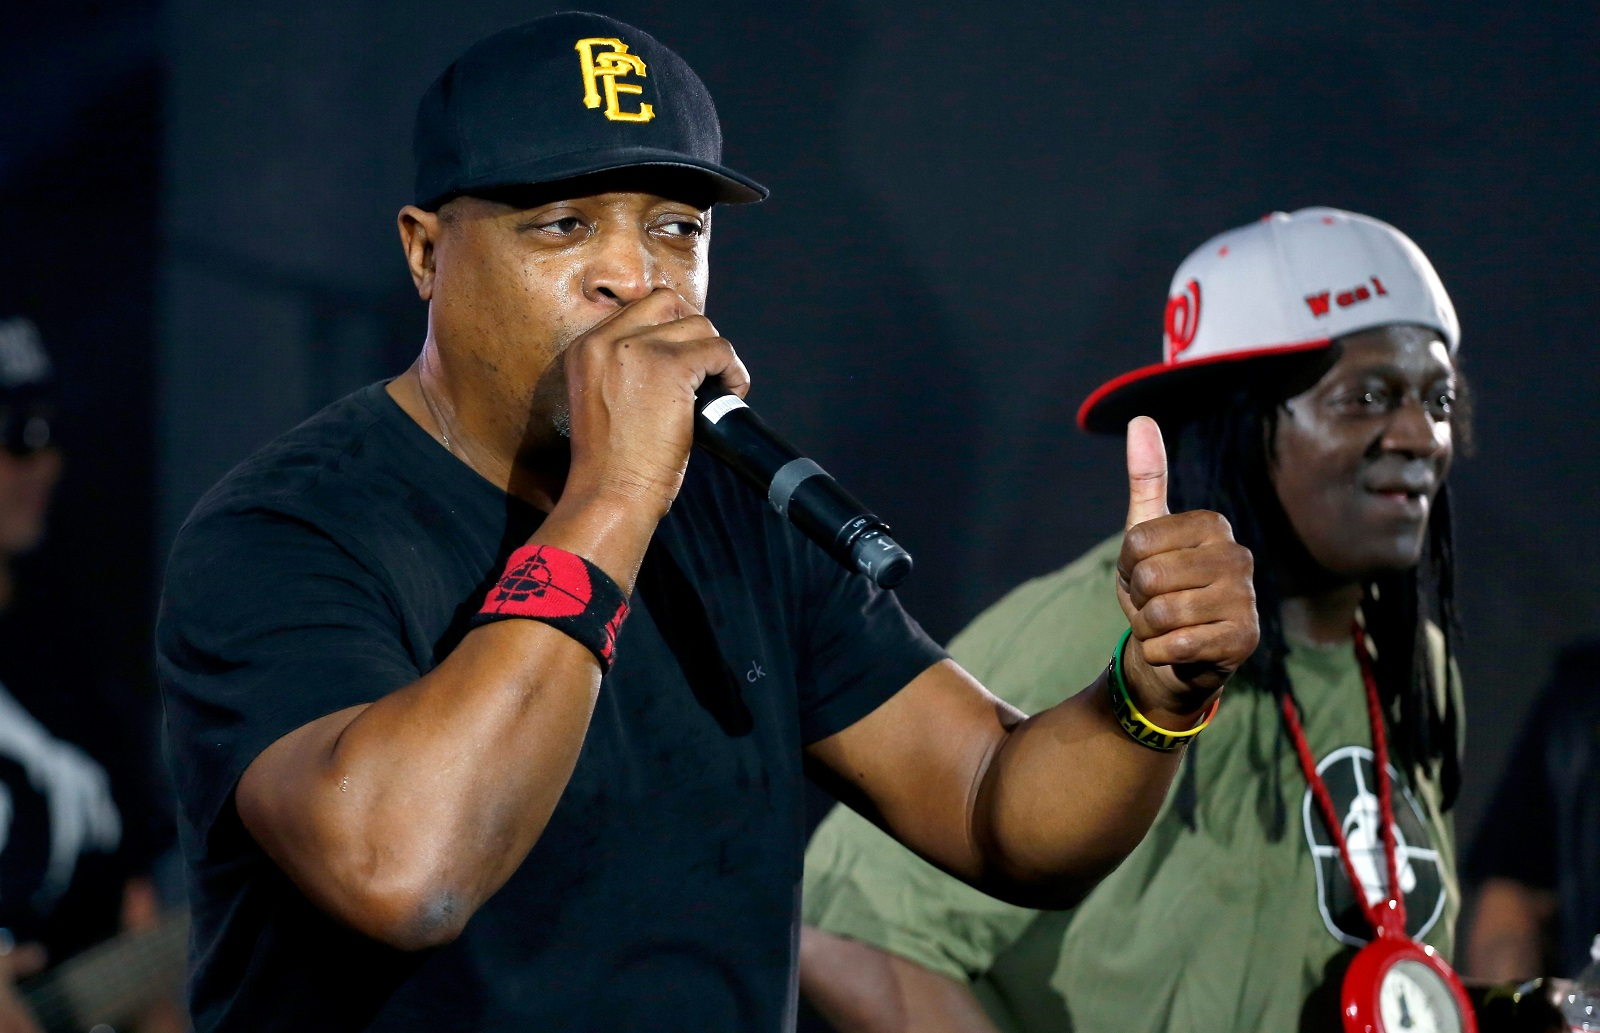 Chuck D, left, and Flava Flav lead Public Enemy to Canalside. (Getty Images)